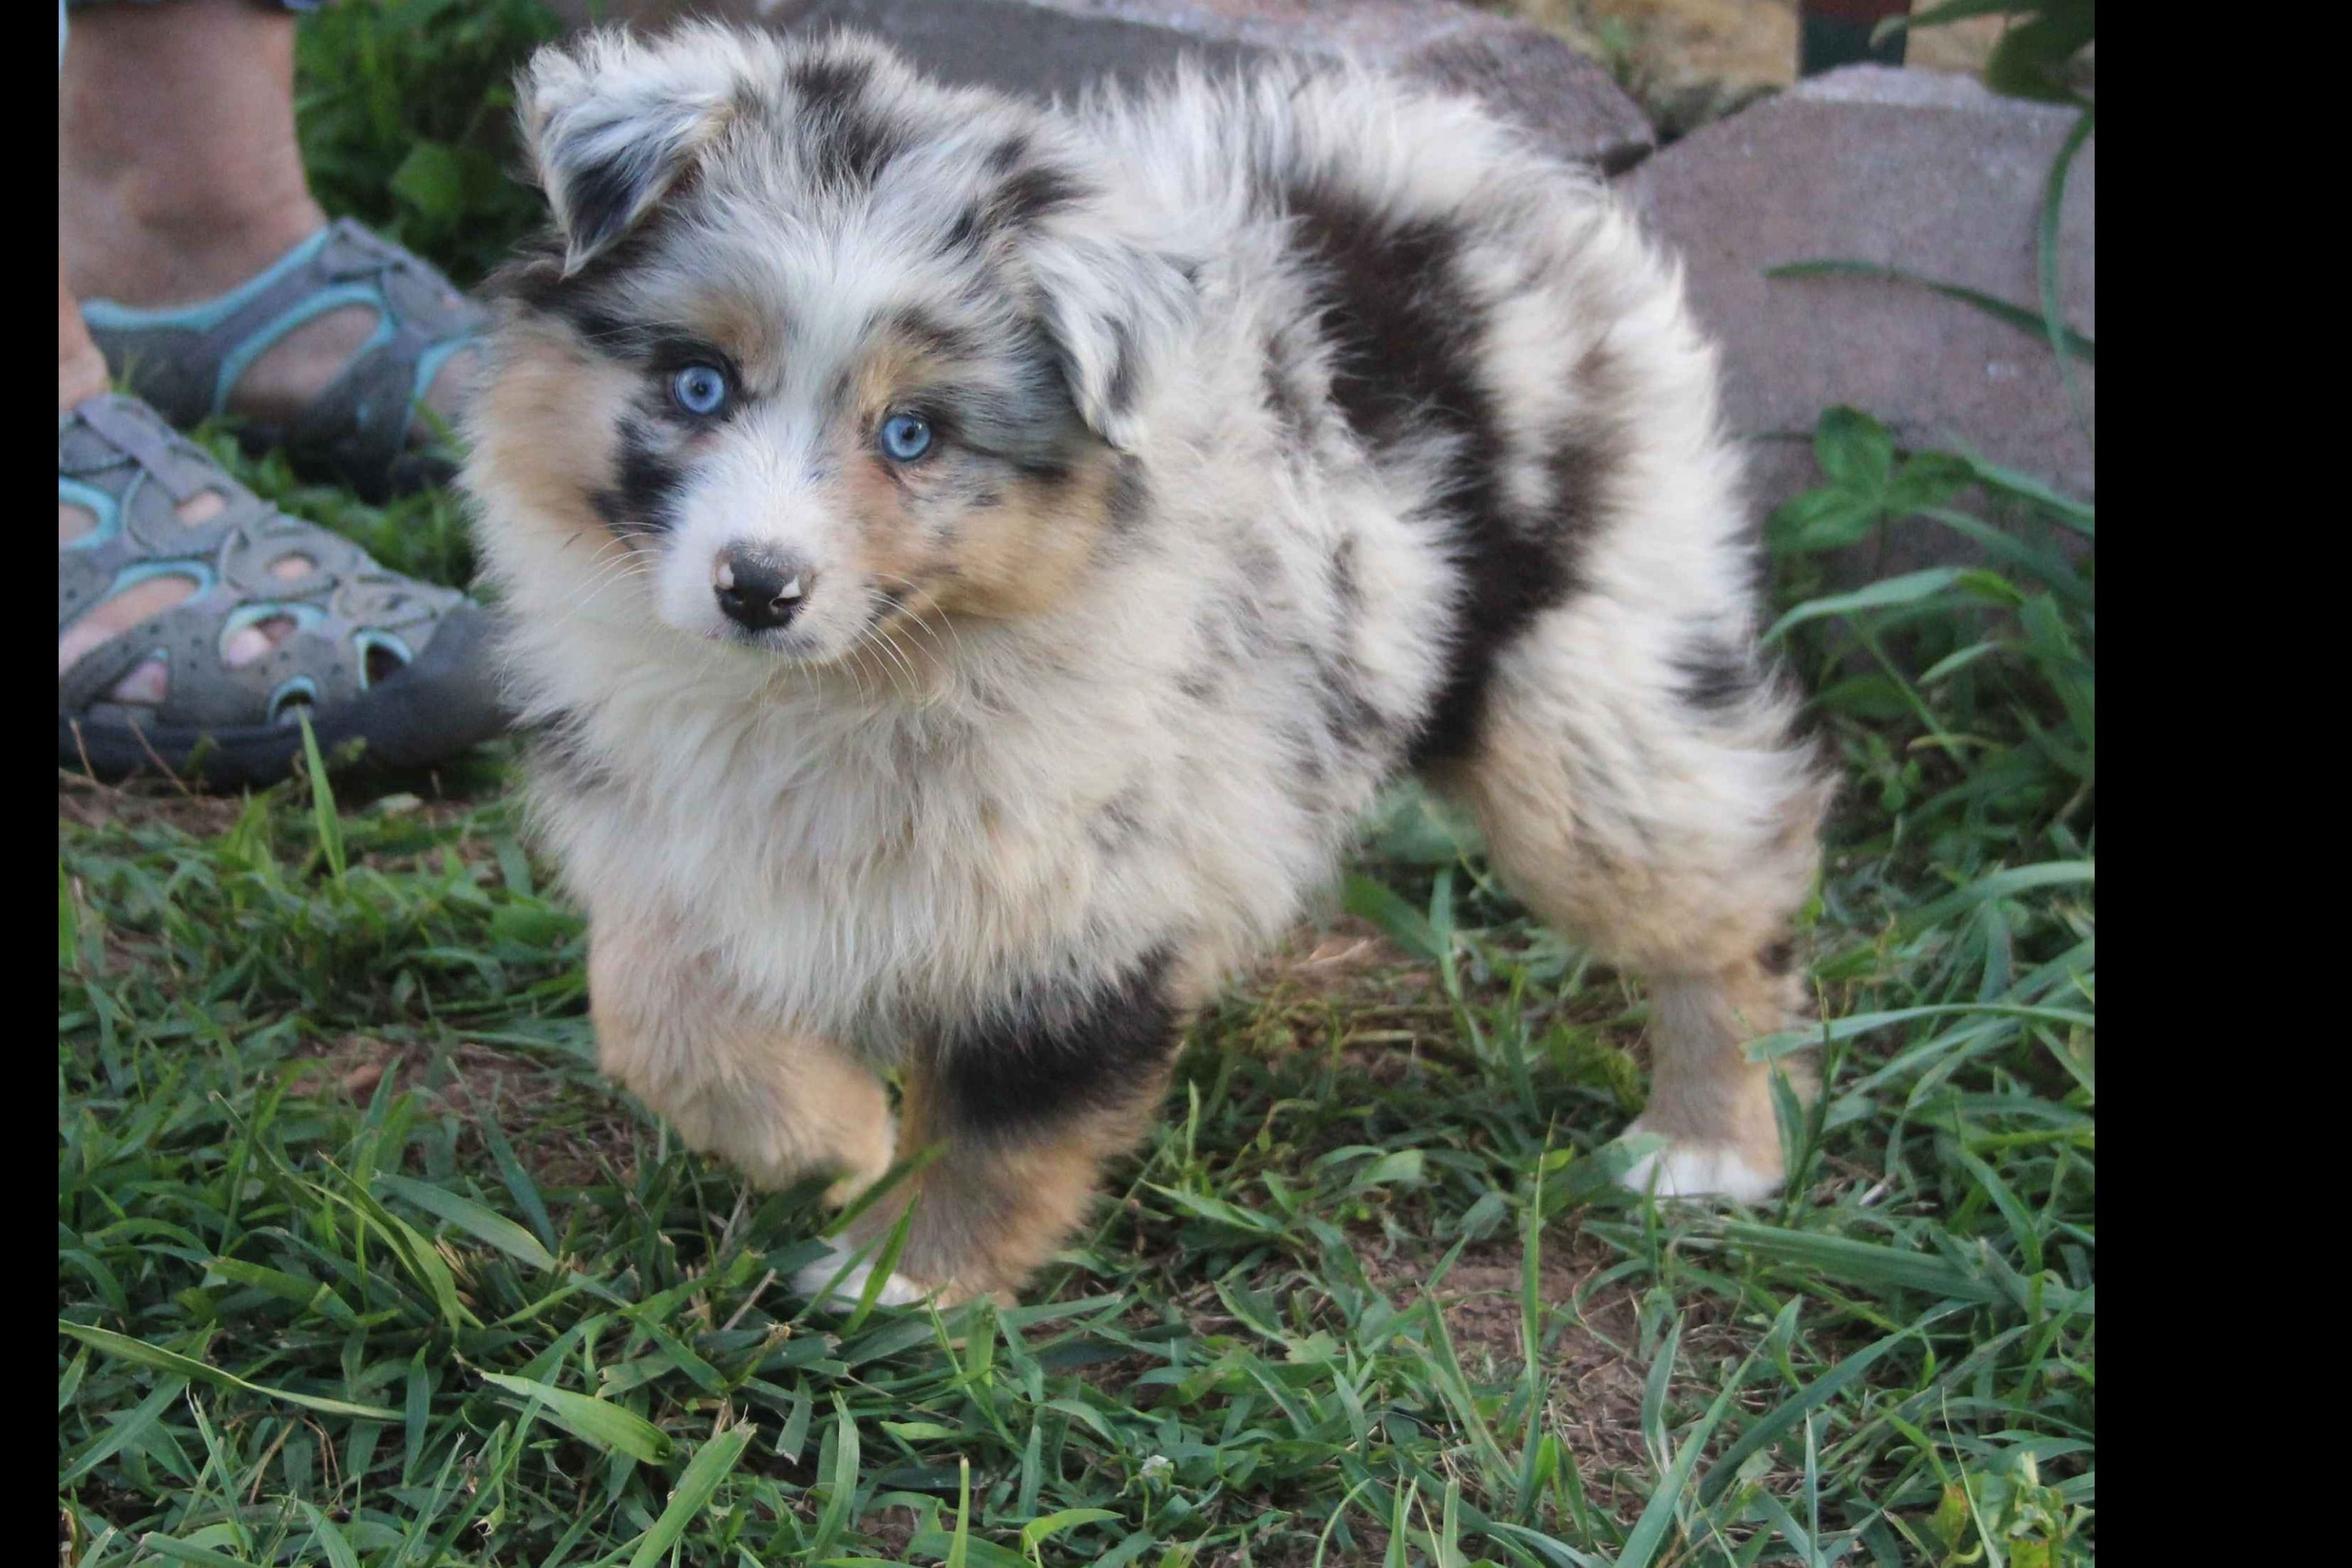 Dana Carr Has Miniature American Shepherd Puppies For Sale In Bolivar Mo On Akc Puppyfinder Miniature American Shepherd American Shepherd Shepherd Puppies